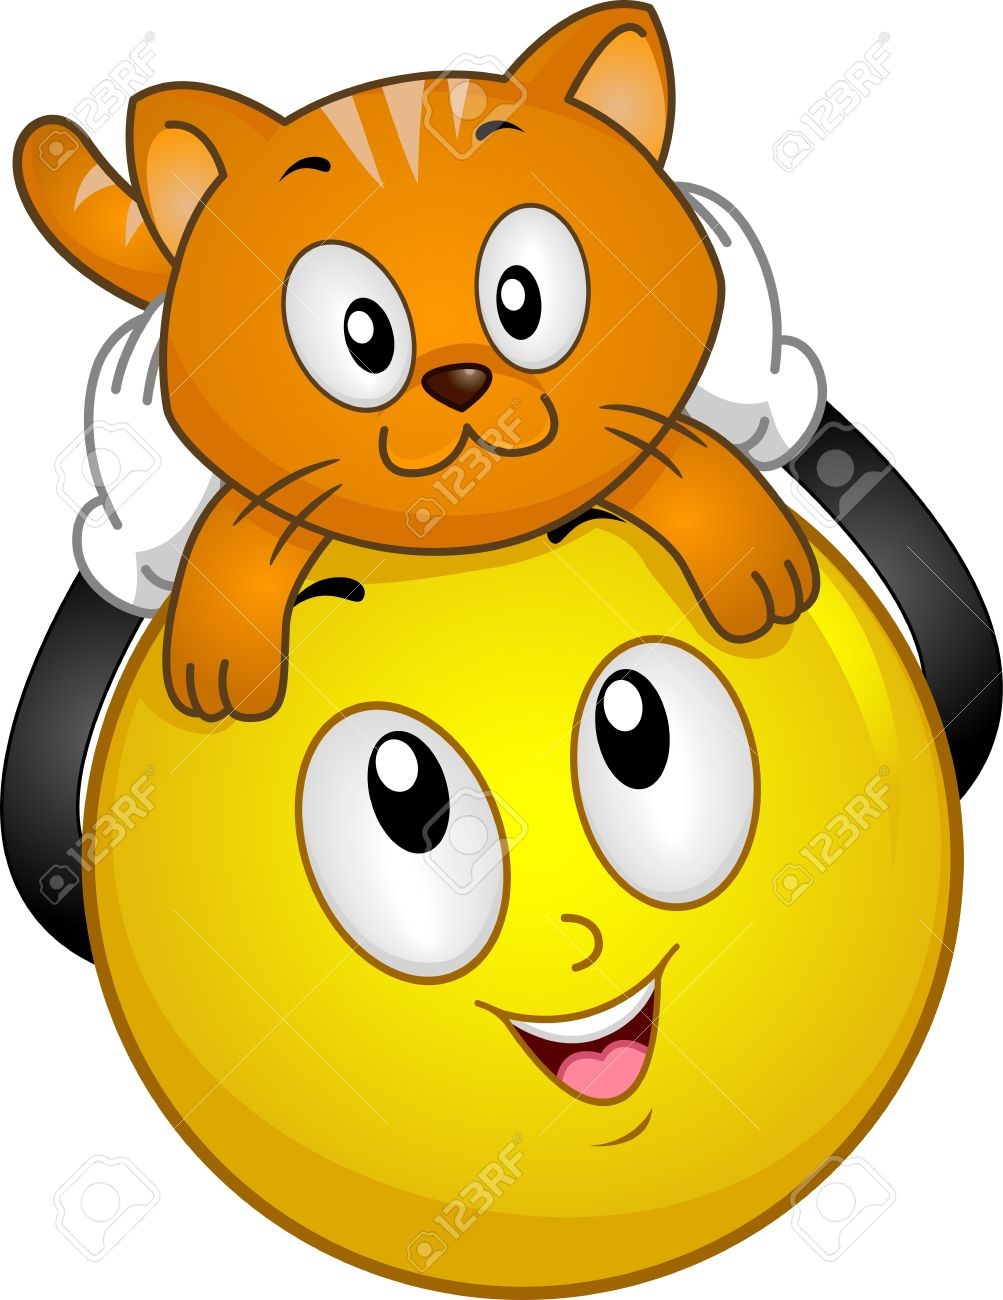 Illustration of Smiley holding a pet cat above its head Stock Photo - 18620084